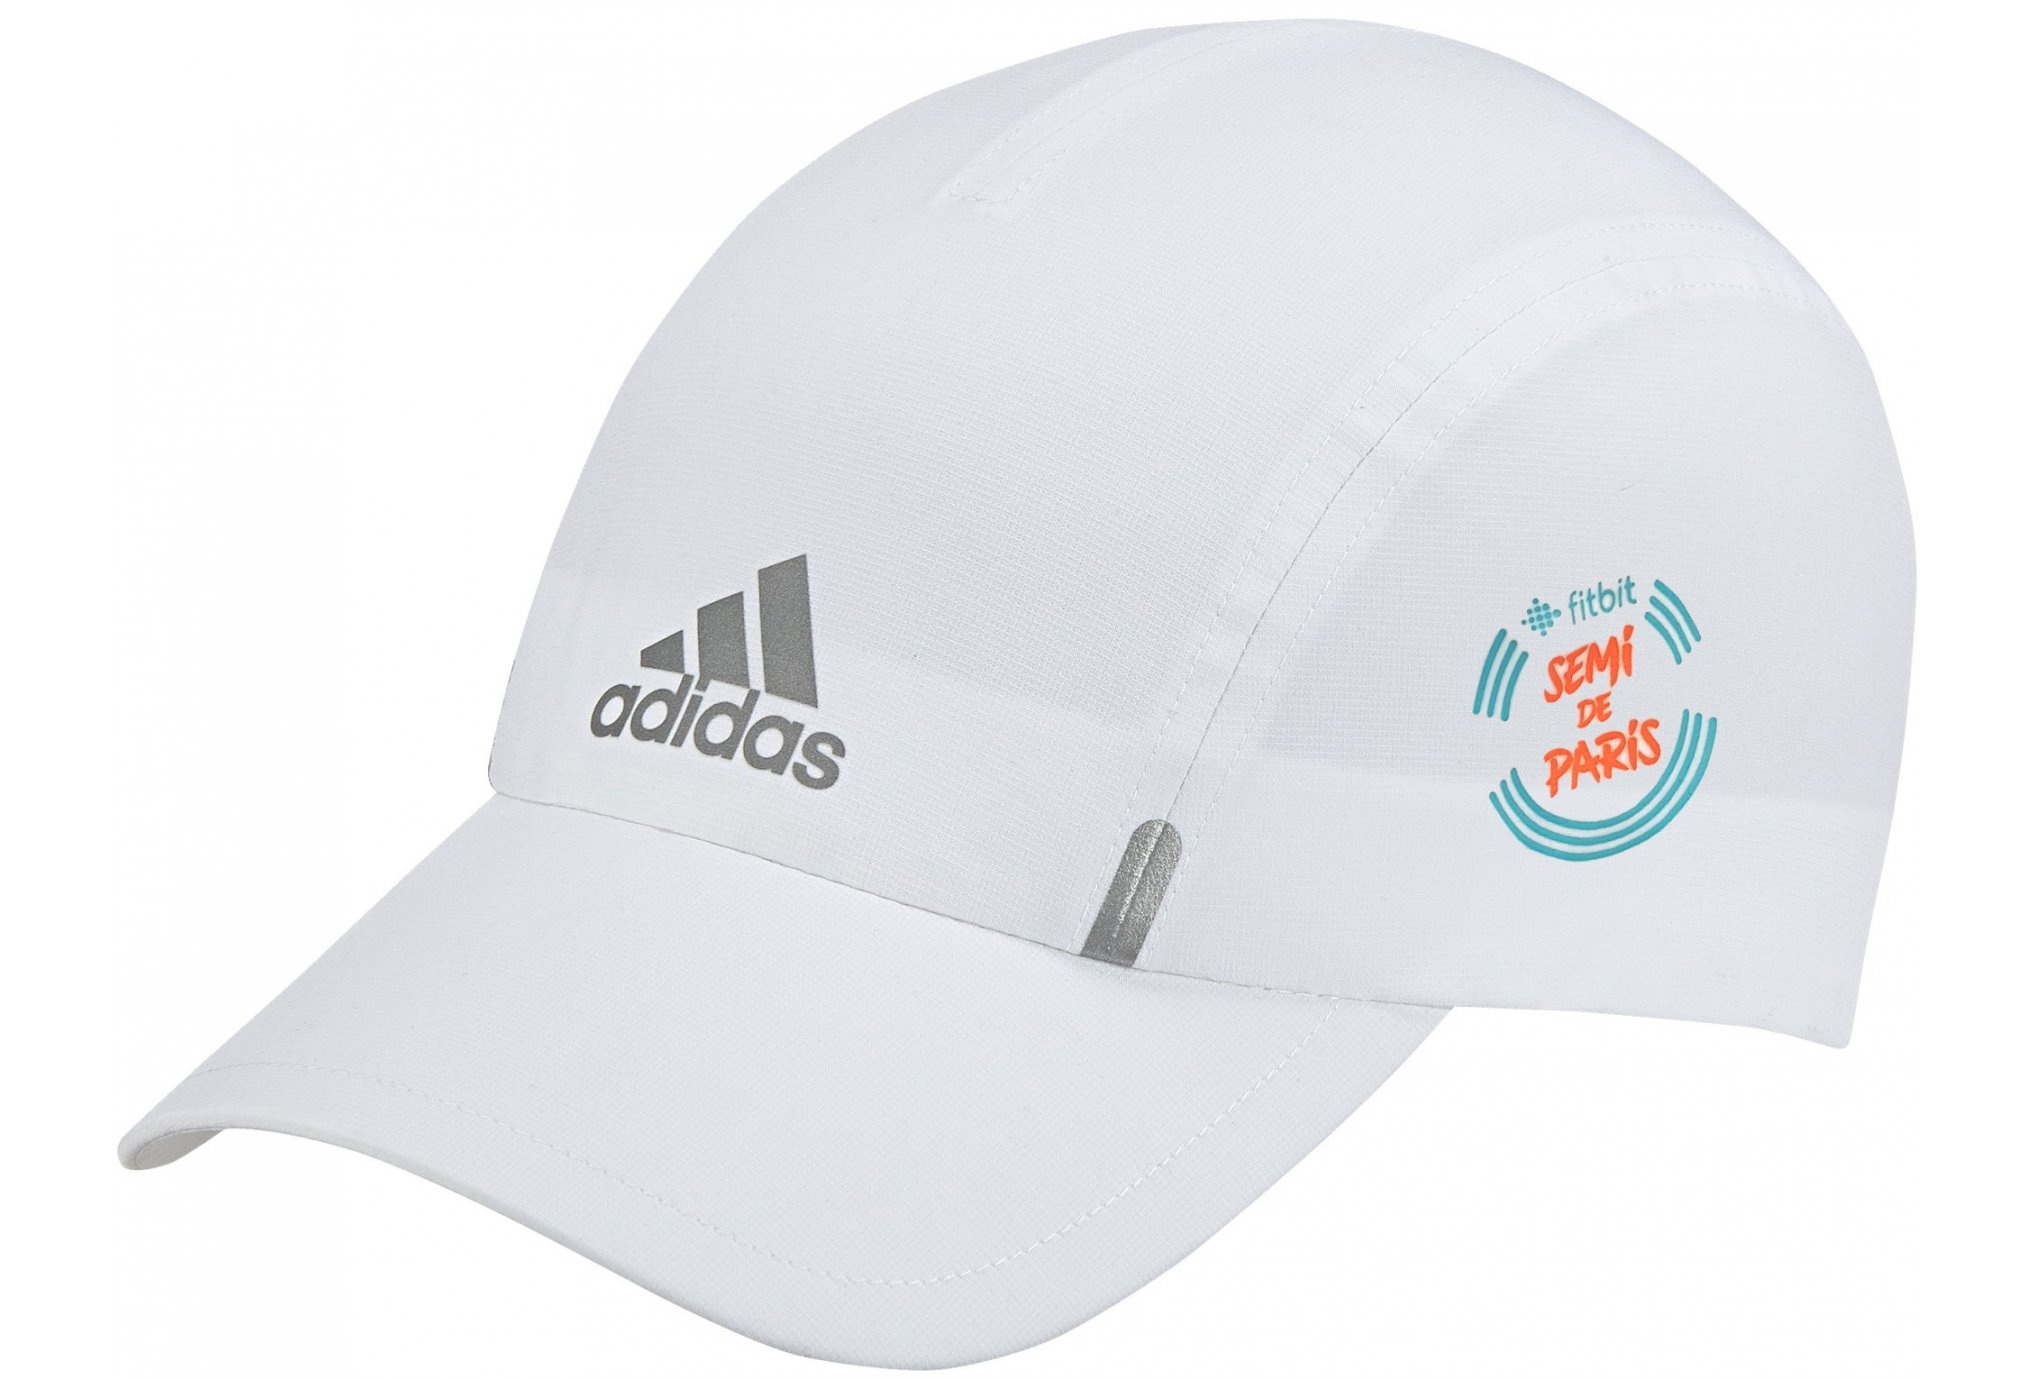 adidas Climalite Running Fitbit SDP M Casquettes / bandeaux